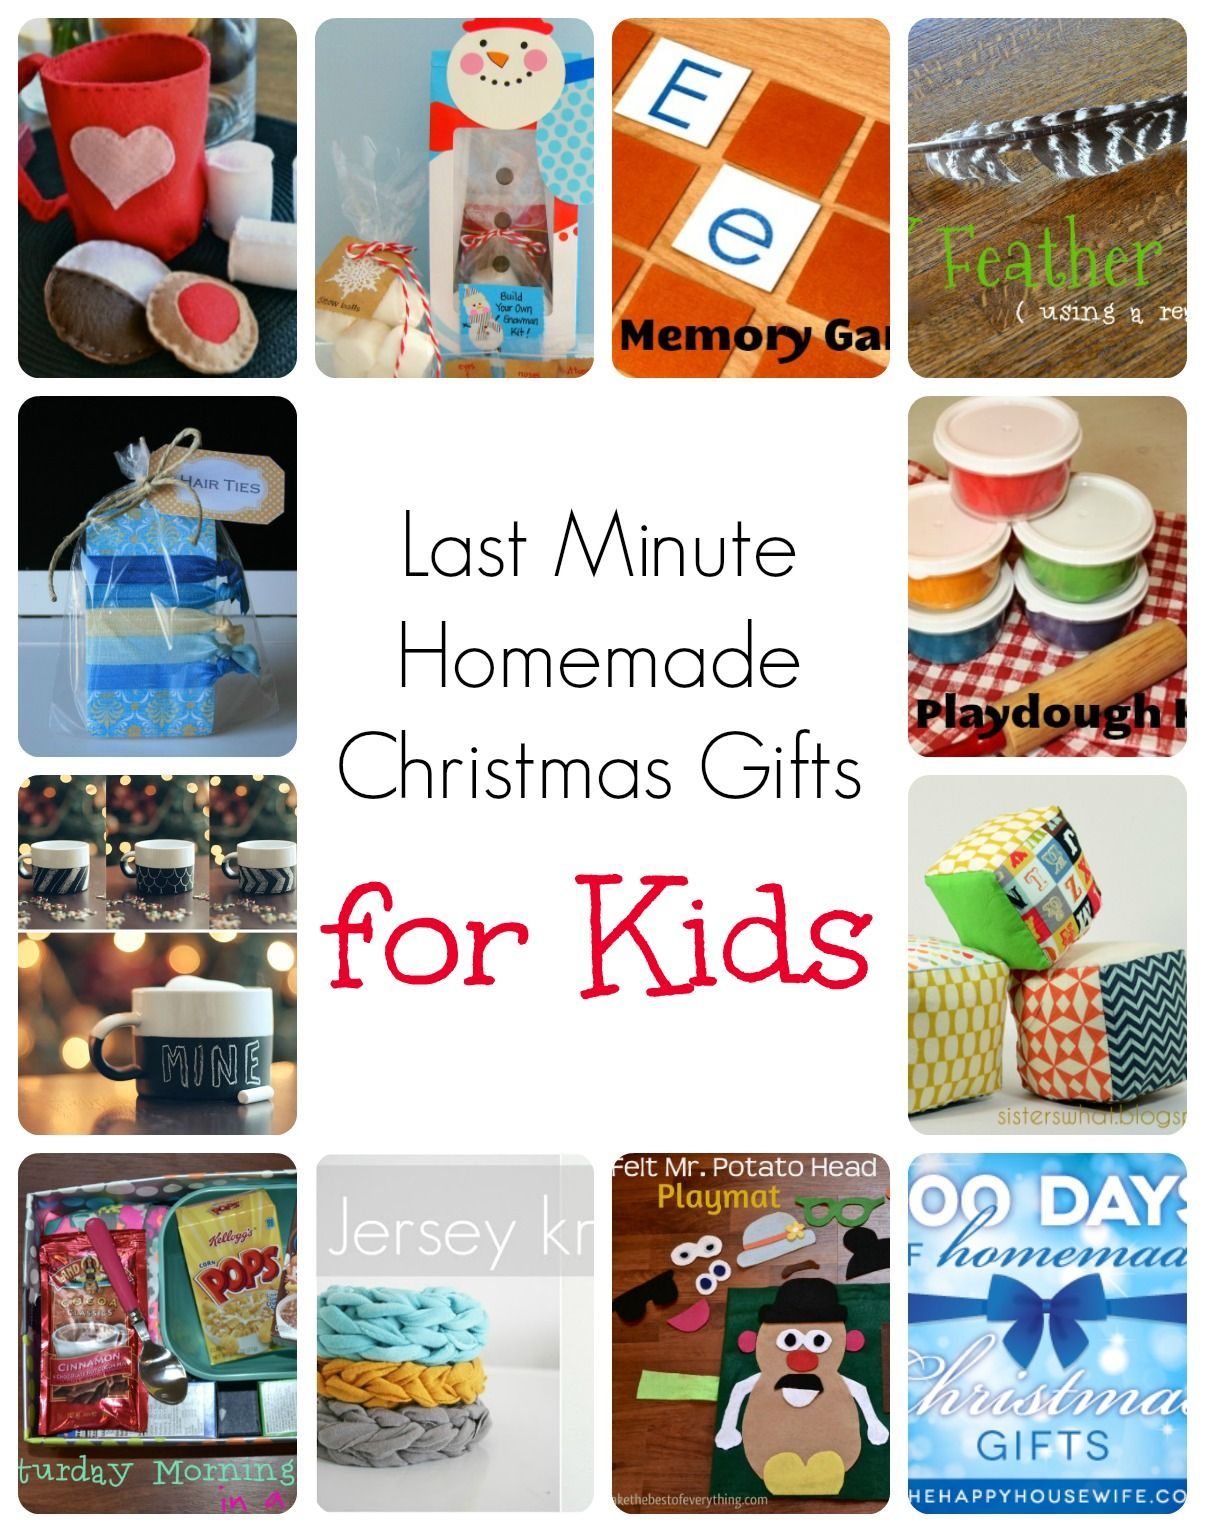 Last Minute Homemade Christmas Gifts for Kids | Christmas Crafts for ...